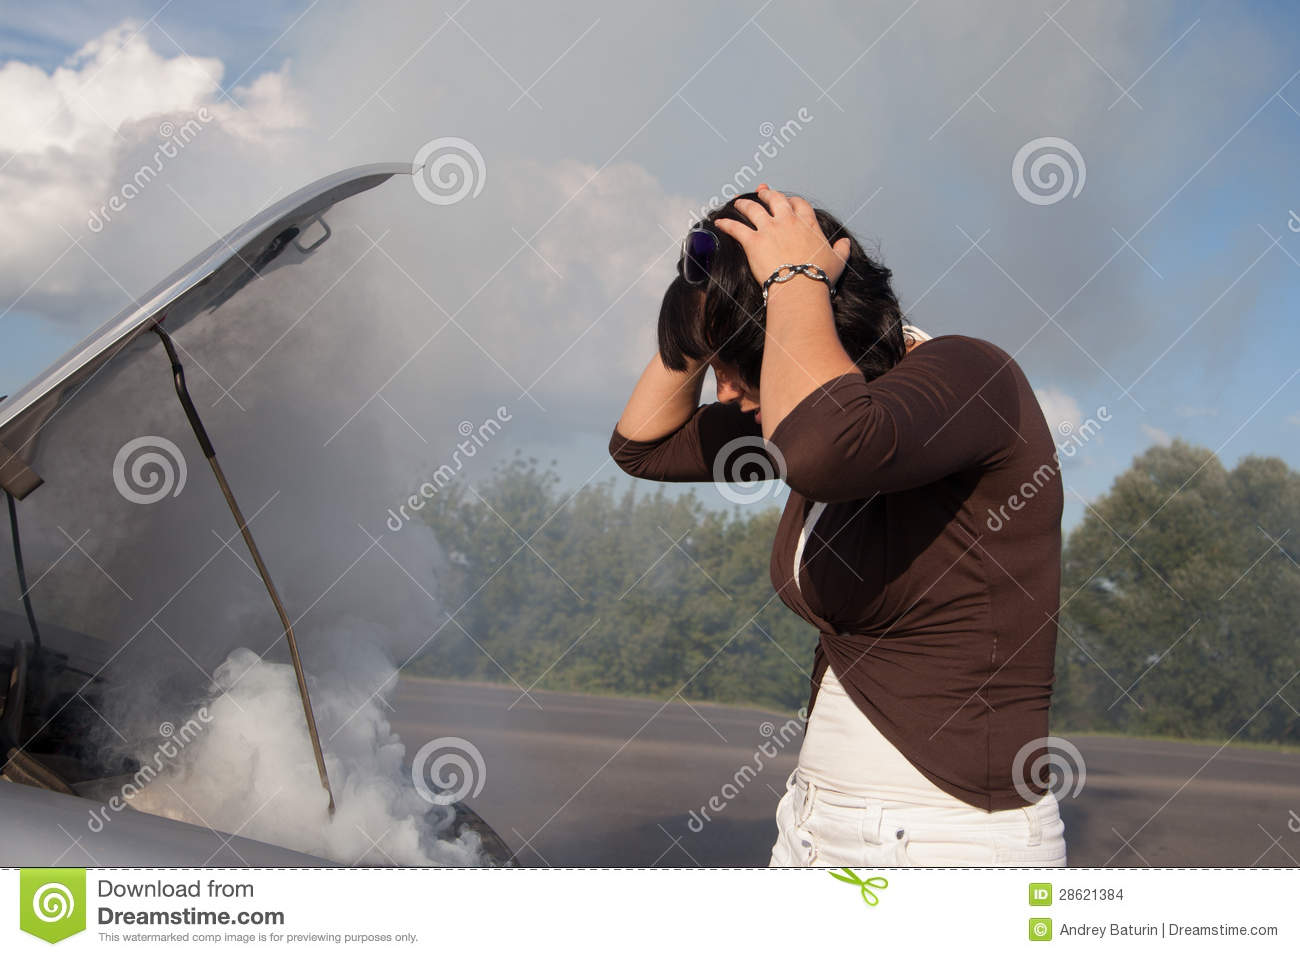 Woman looking at smoking car engine